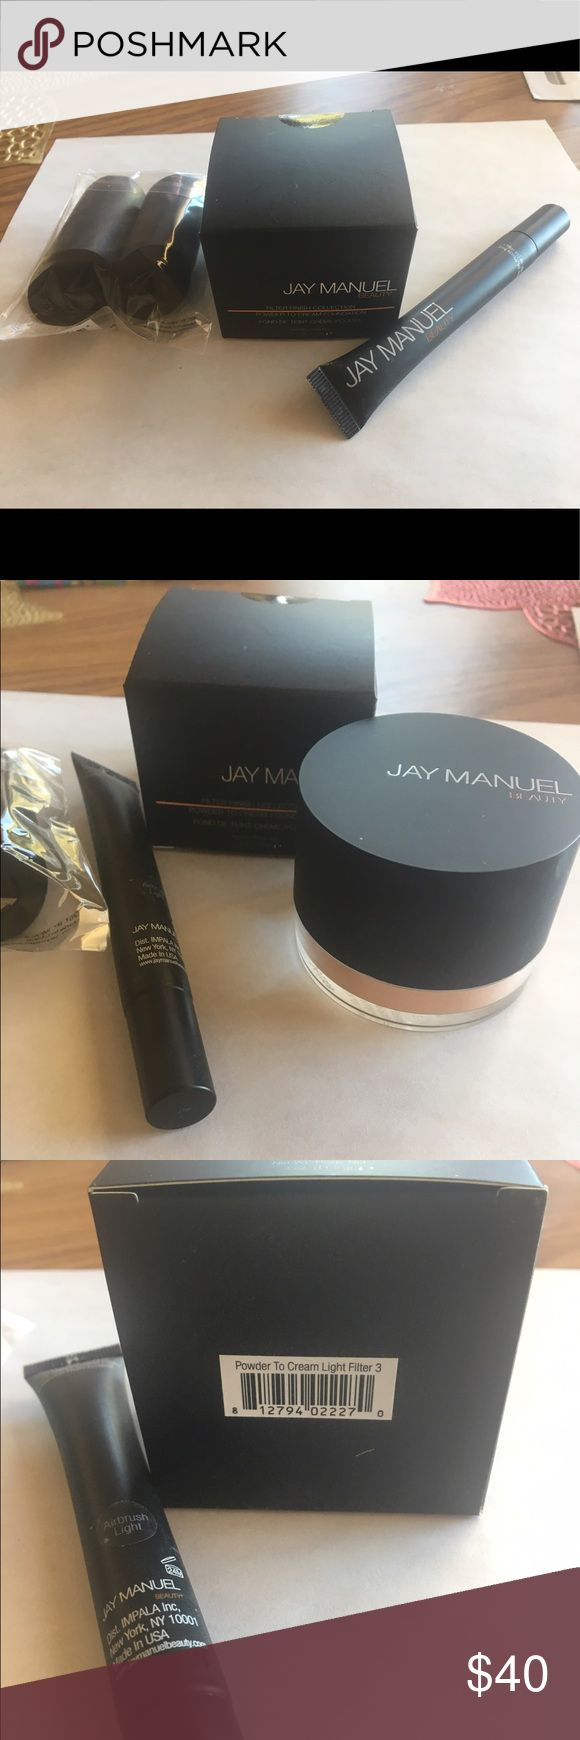 Jay Manuel Beauty Foundation Collection Jay Manuel Beauty powder to cream foundation.  Comes with:  Powdered cream light filter number three (shown in picture)  Jay Manuel Photo illusion concealer airbrush light color.  Two black beauty blenders. Only used once! Perfect condition Jay Manuel Makeup Foundation